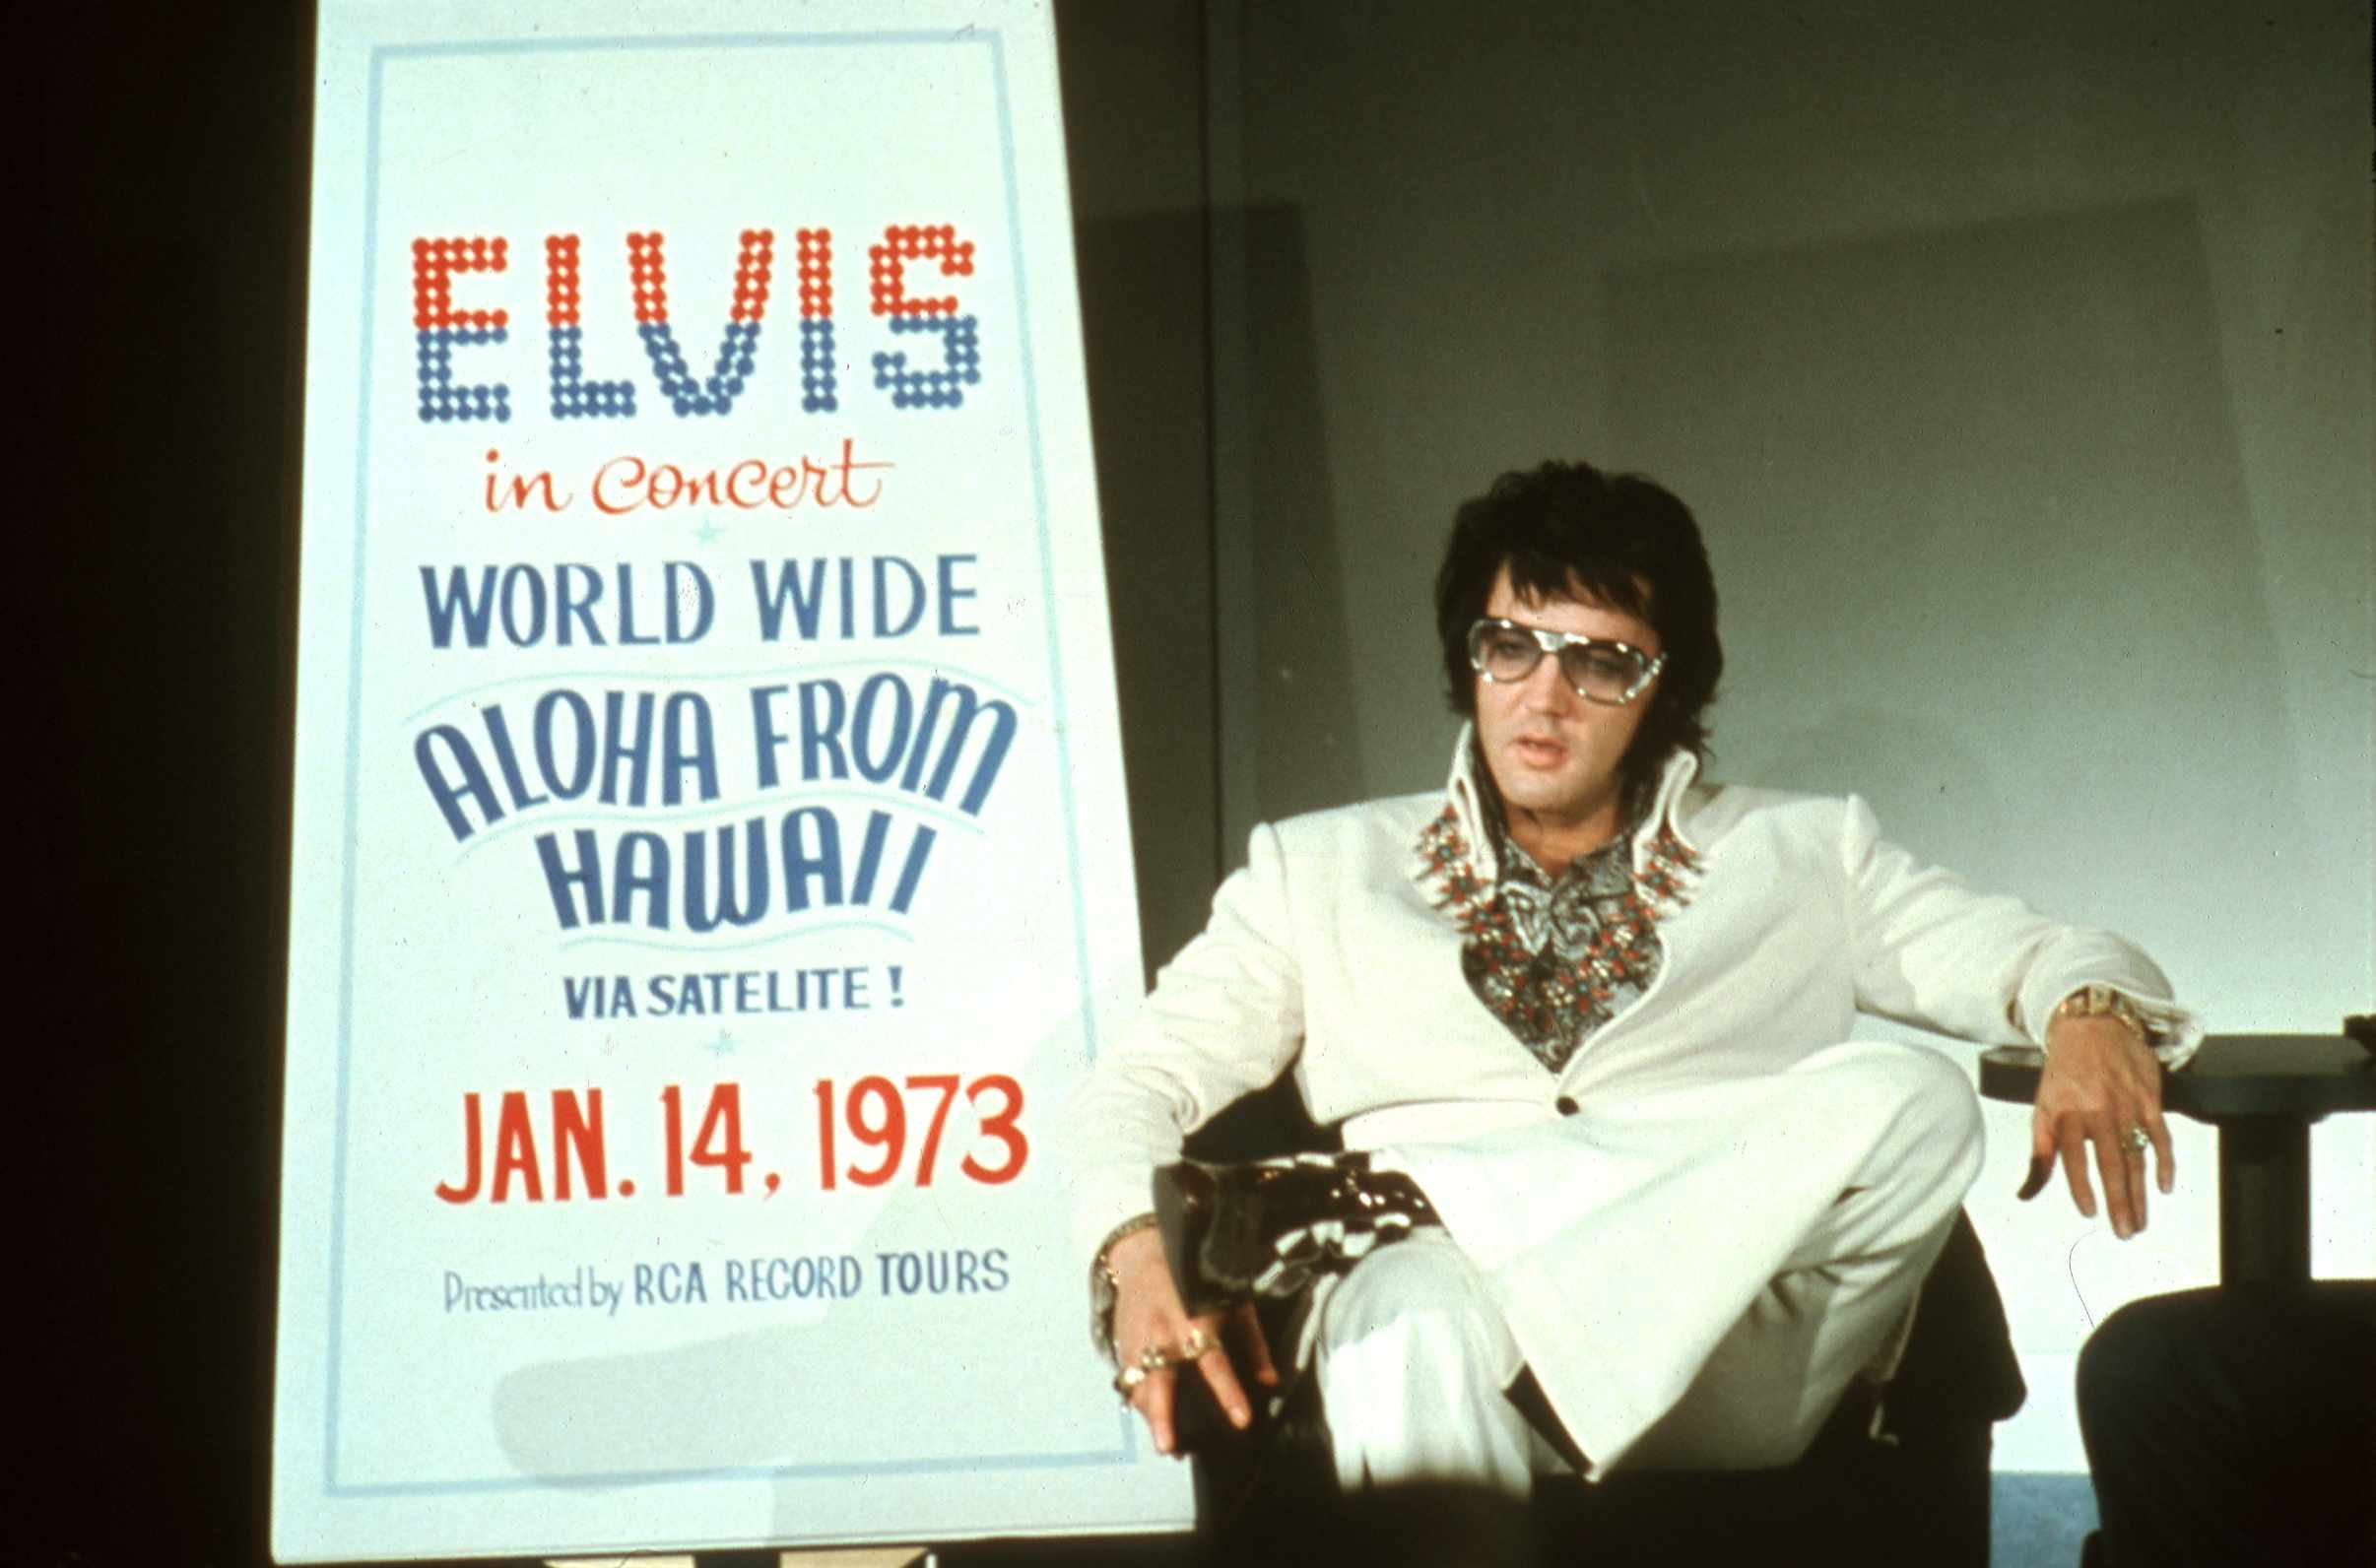 Elvis at Aloha From Hawaii Press Conference